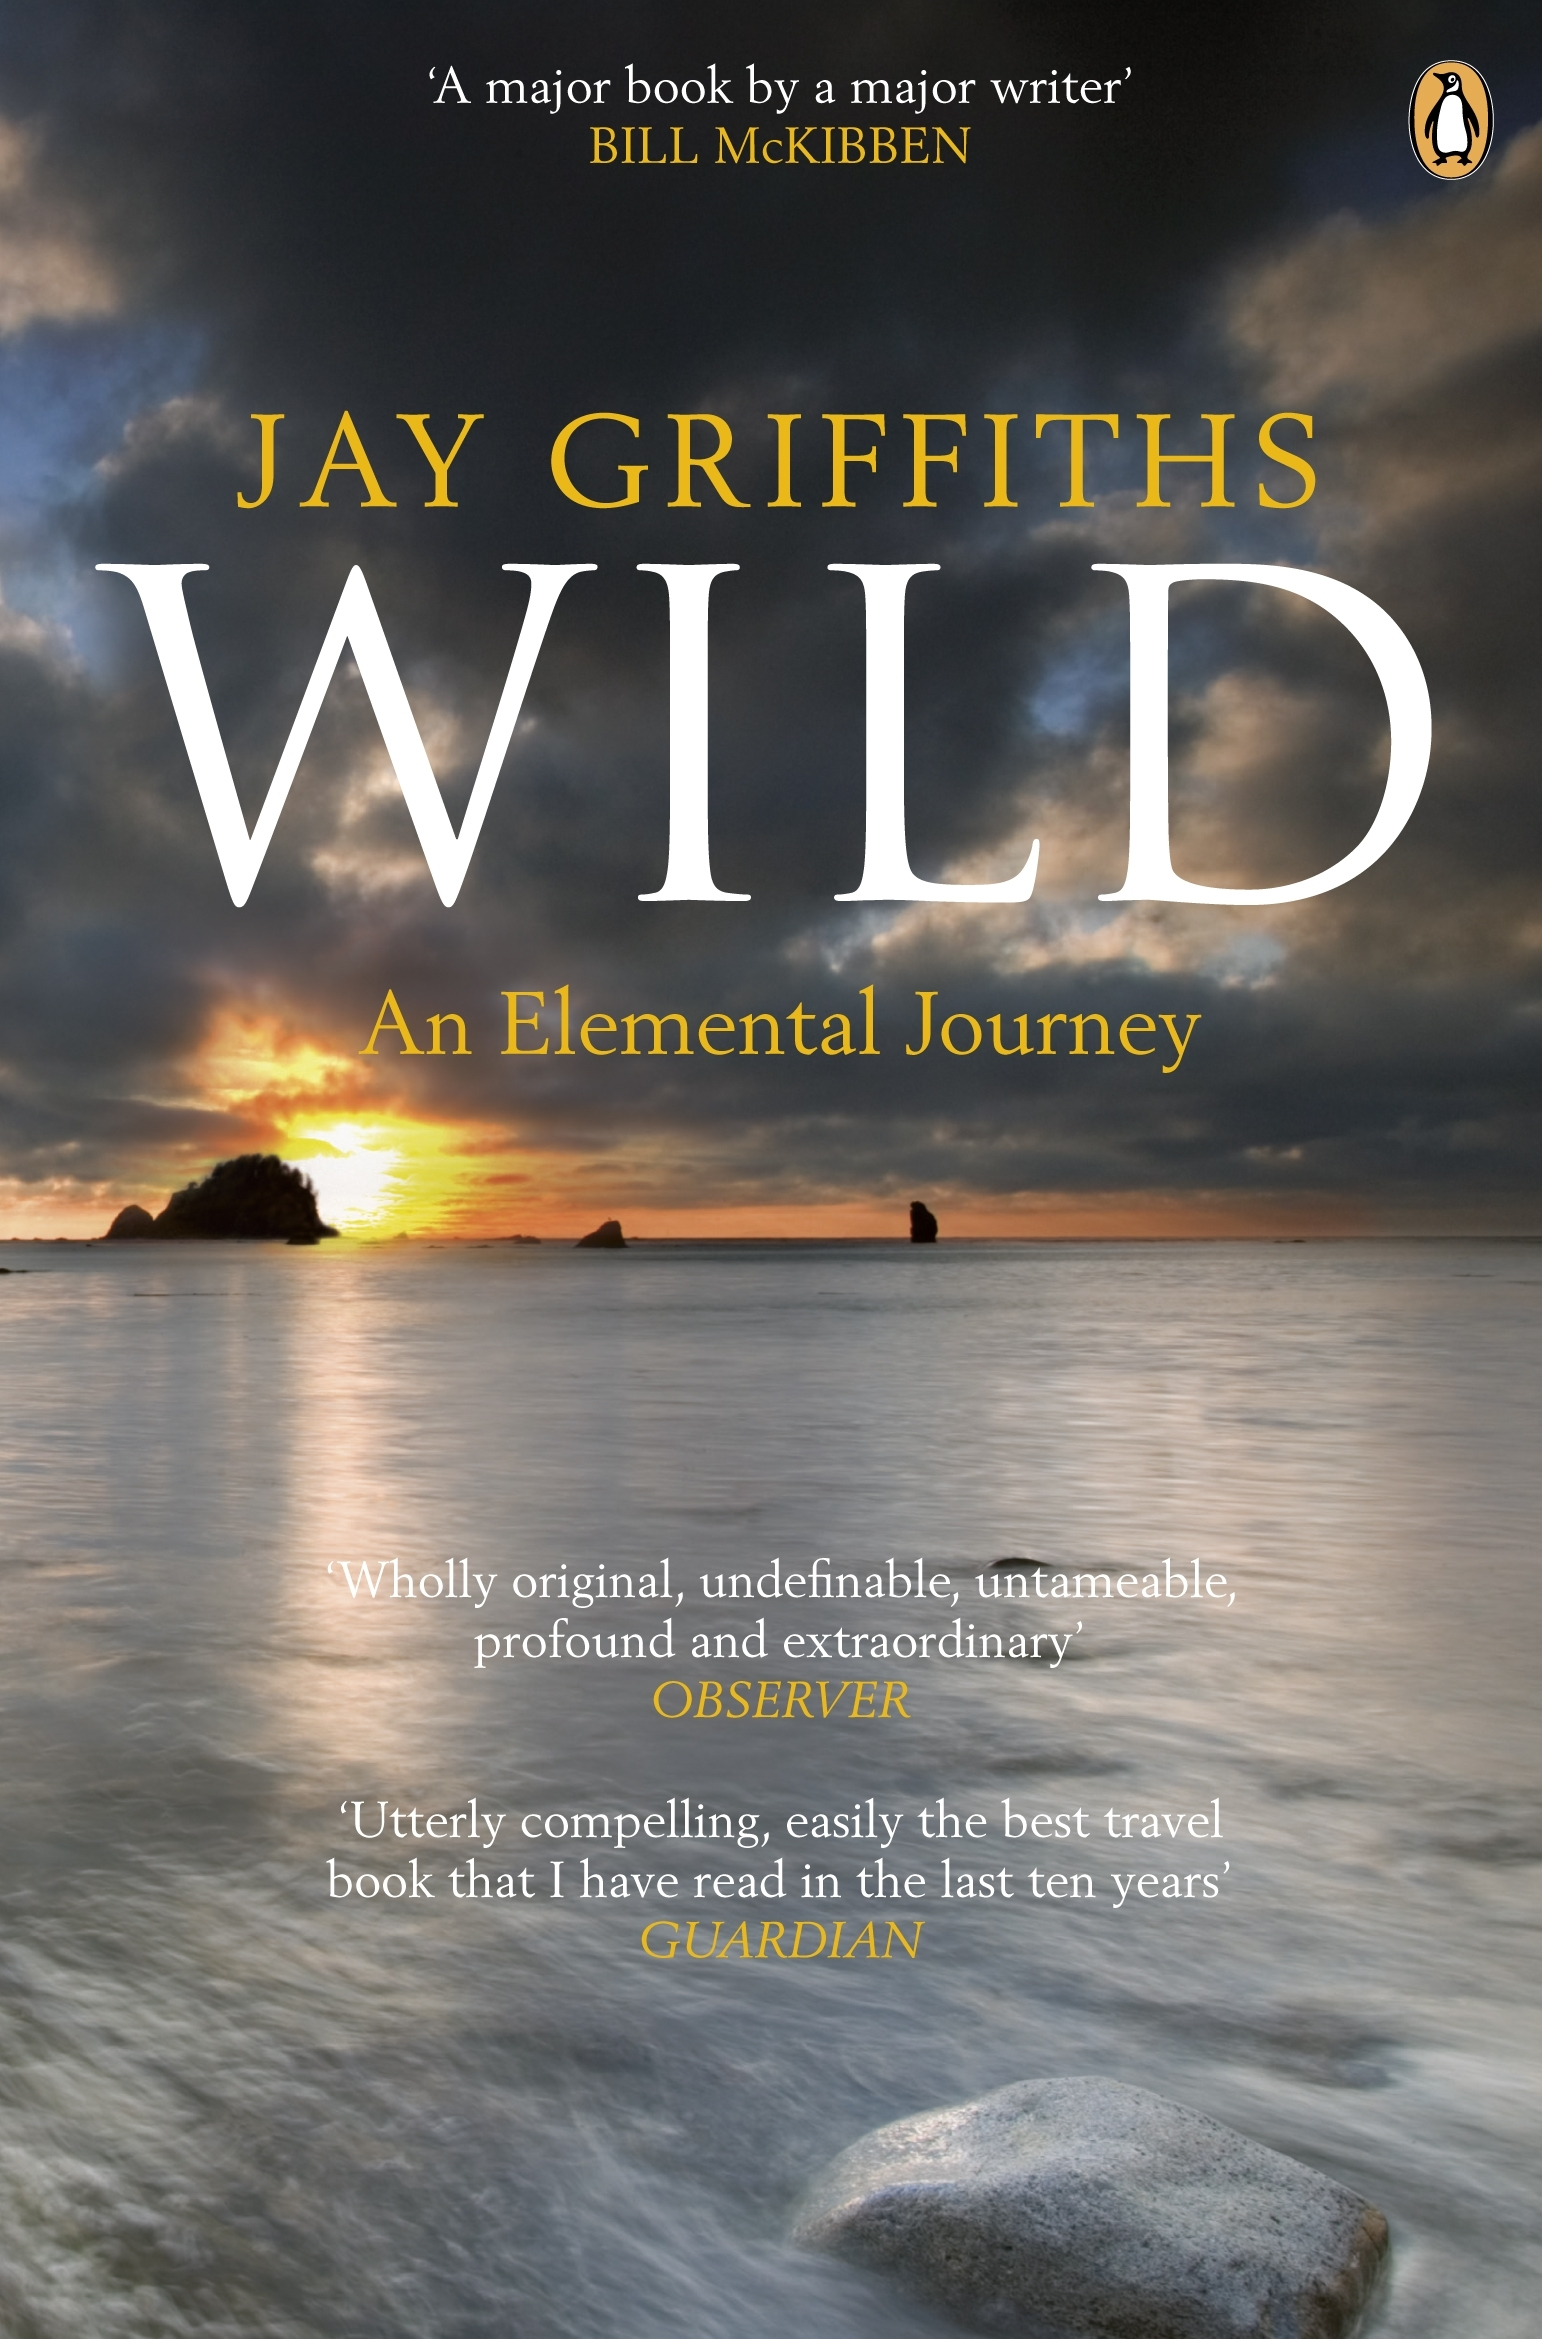 jay griffiths Wild: An Elemental Journey